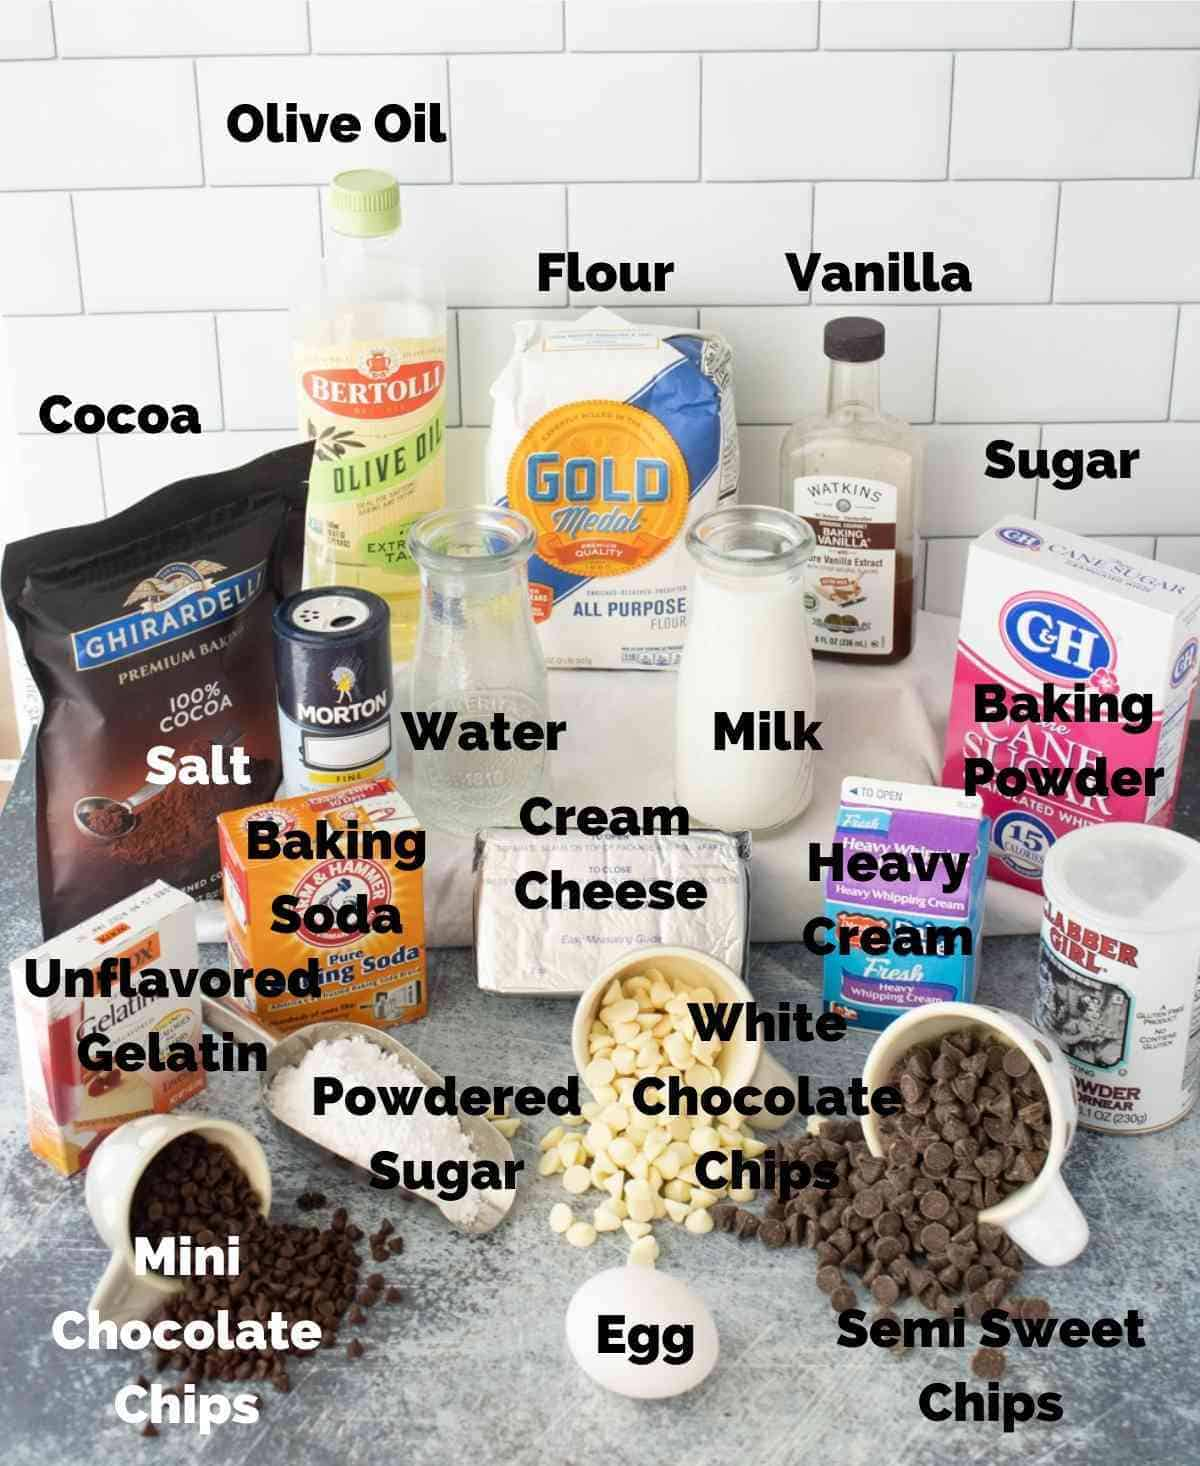 Ingredients for Black Tie Mousse Cake.